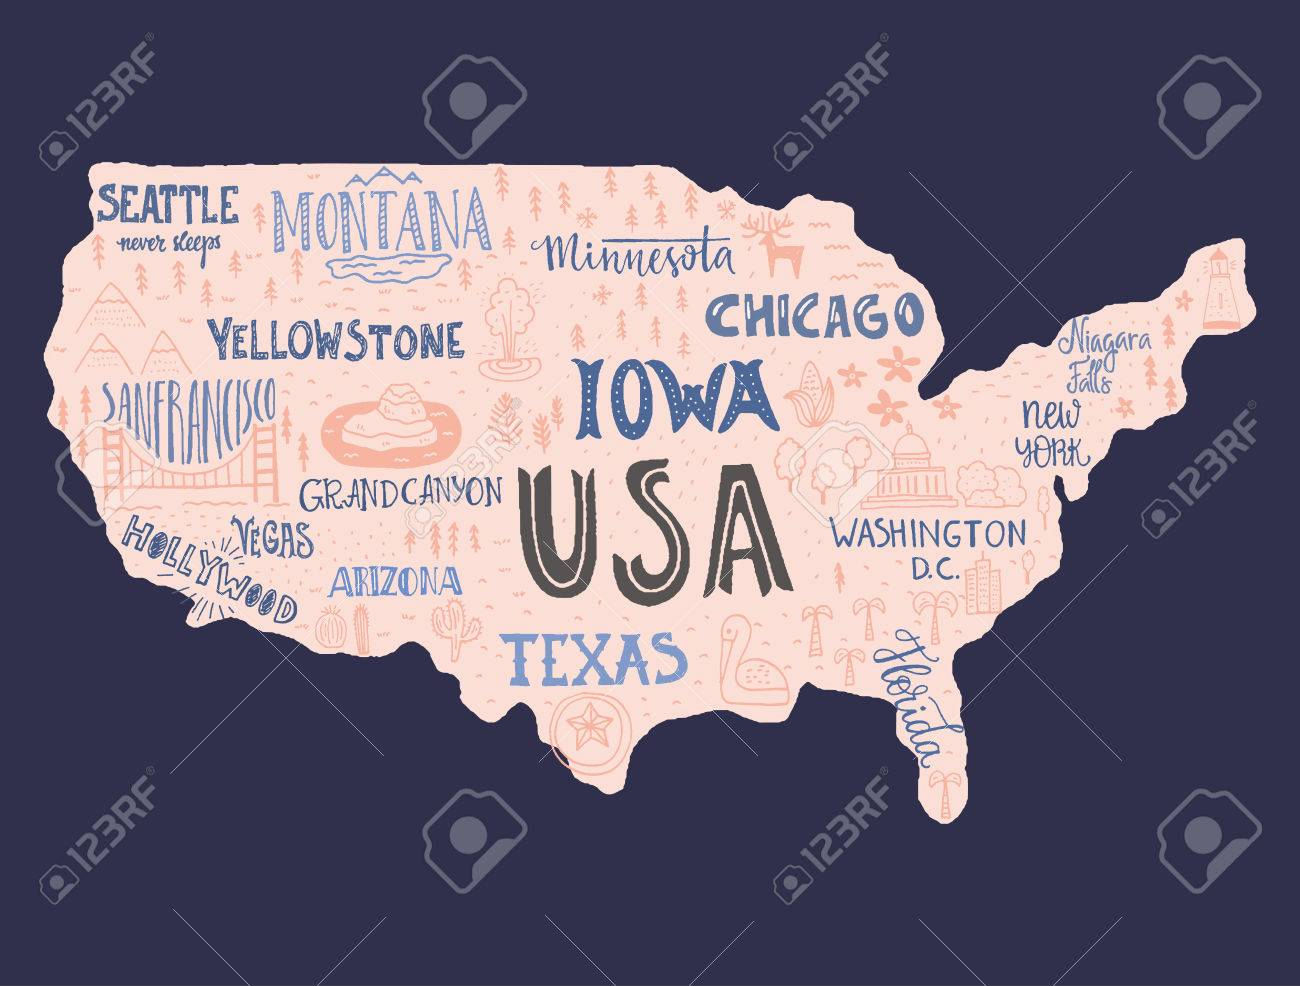 usa map handdrawn ilration with lettering and symbols of tourist attractions creative design element